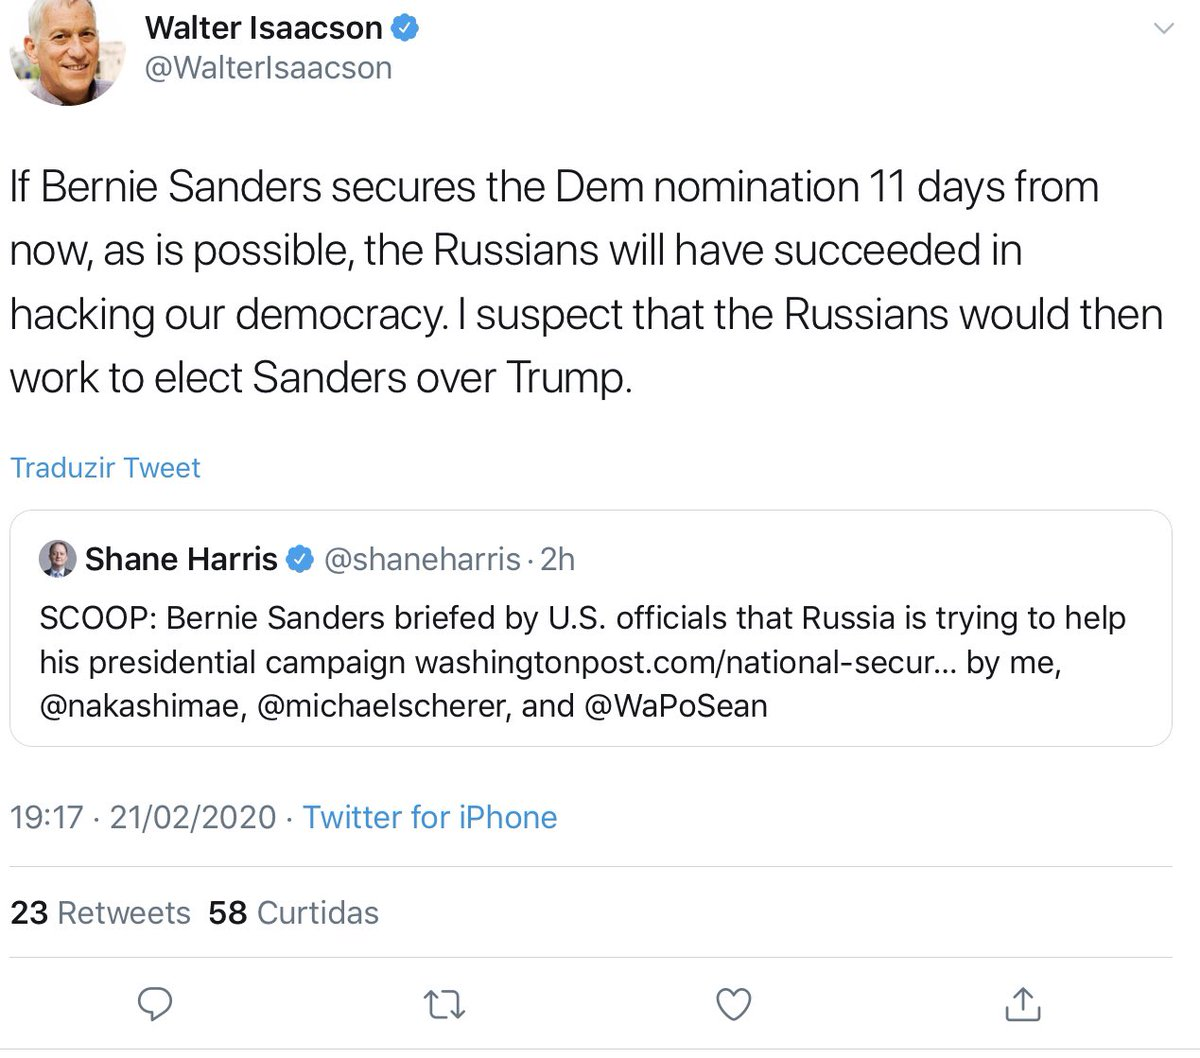 This is the historically stupid and monumentally deranged tweet that @WalterIsaacson seems to have deleted without comment: